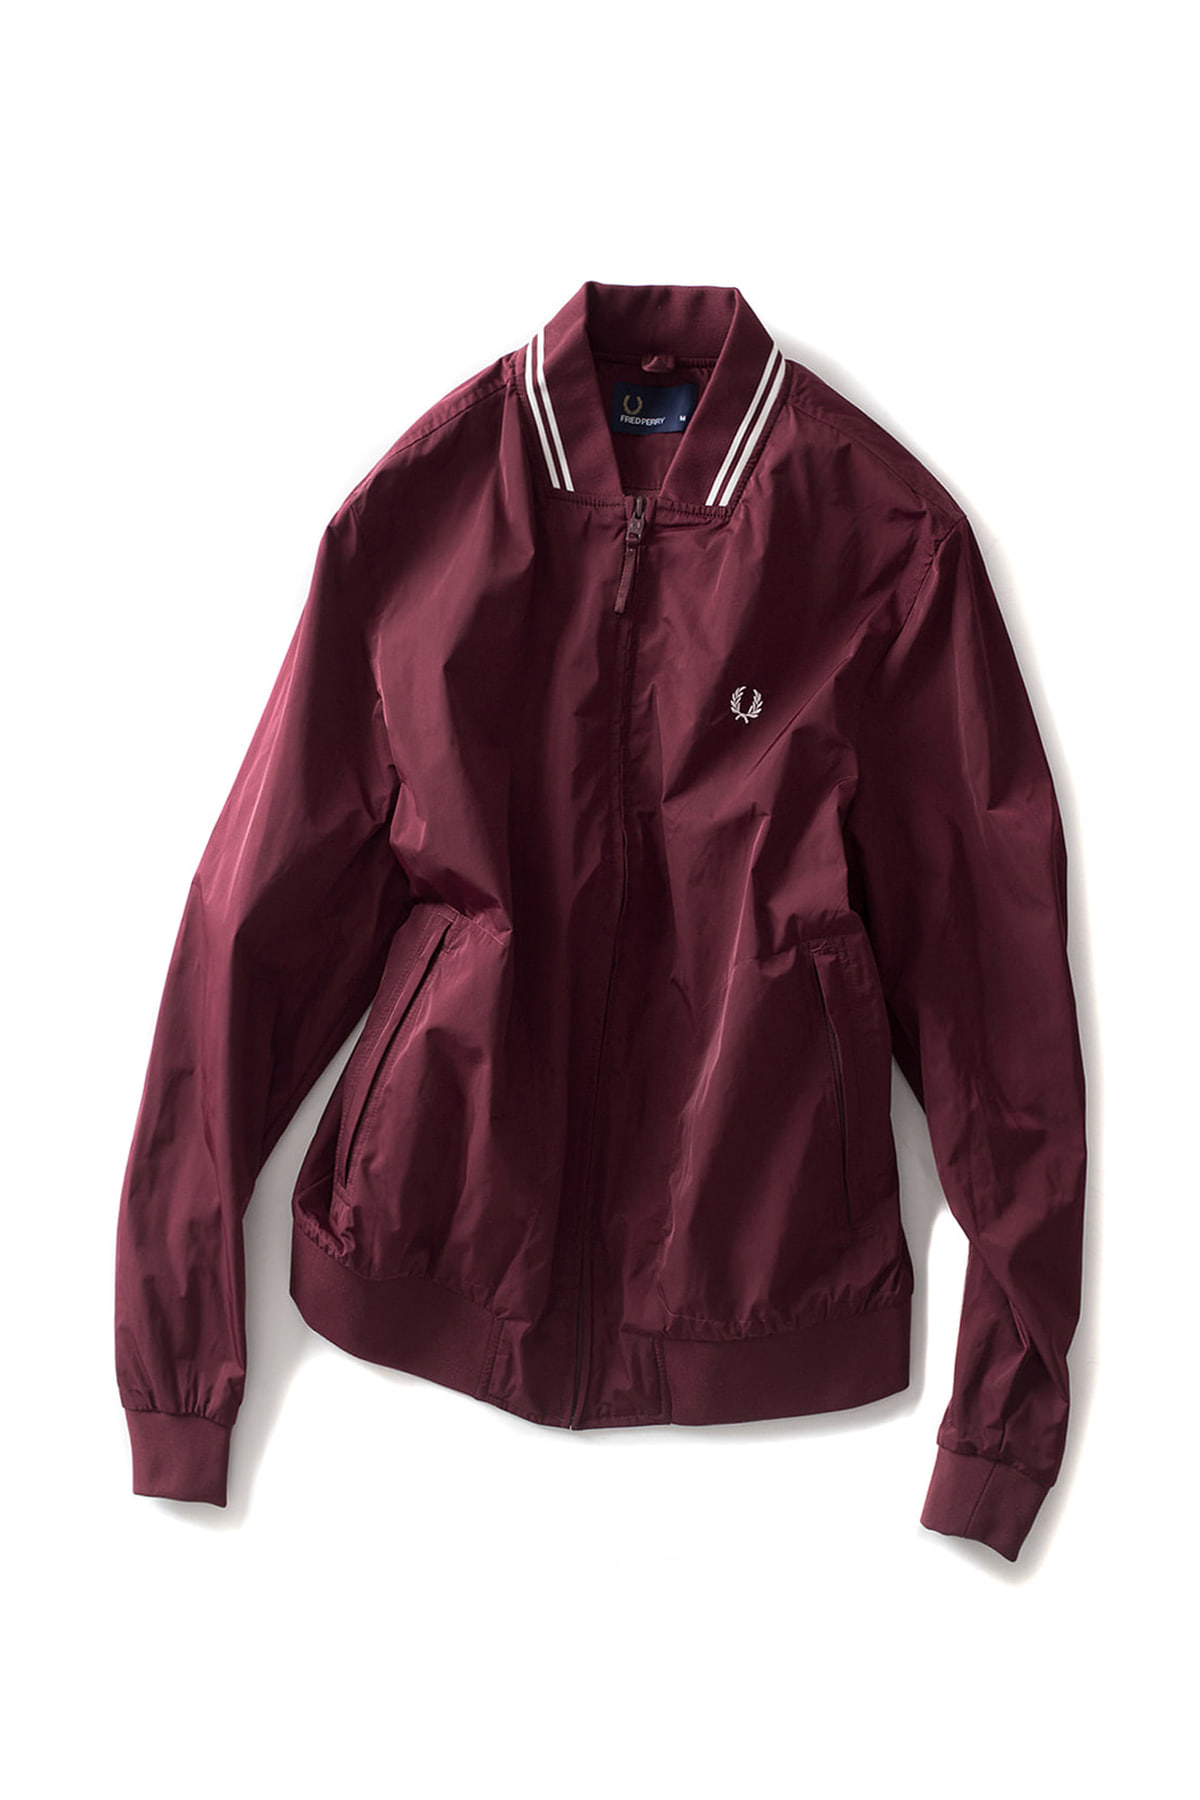 FRED PERRY : Twin Tipped Bomber Jacket (Rosewood)